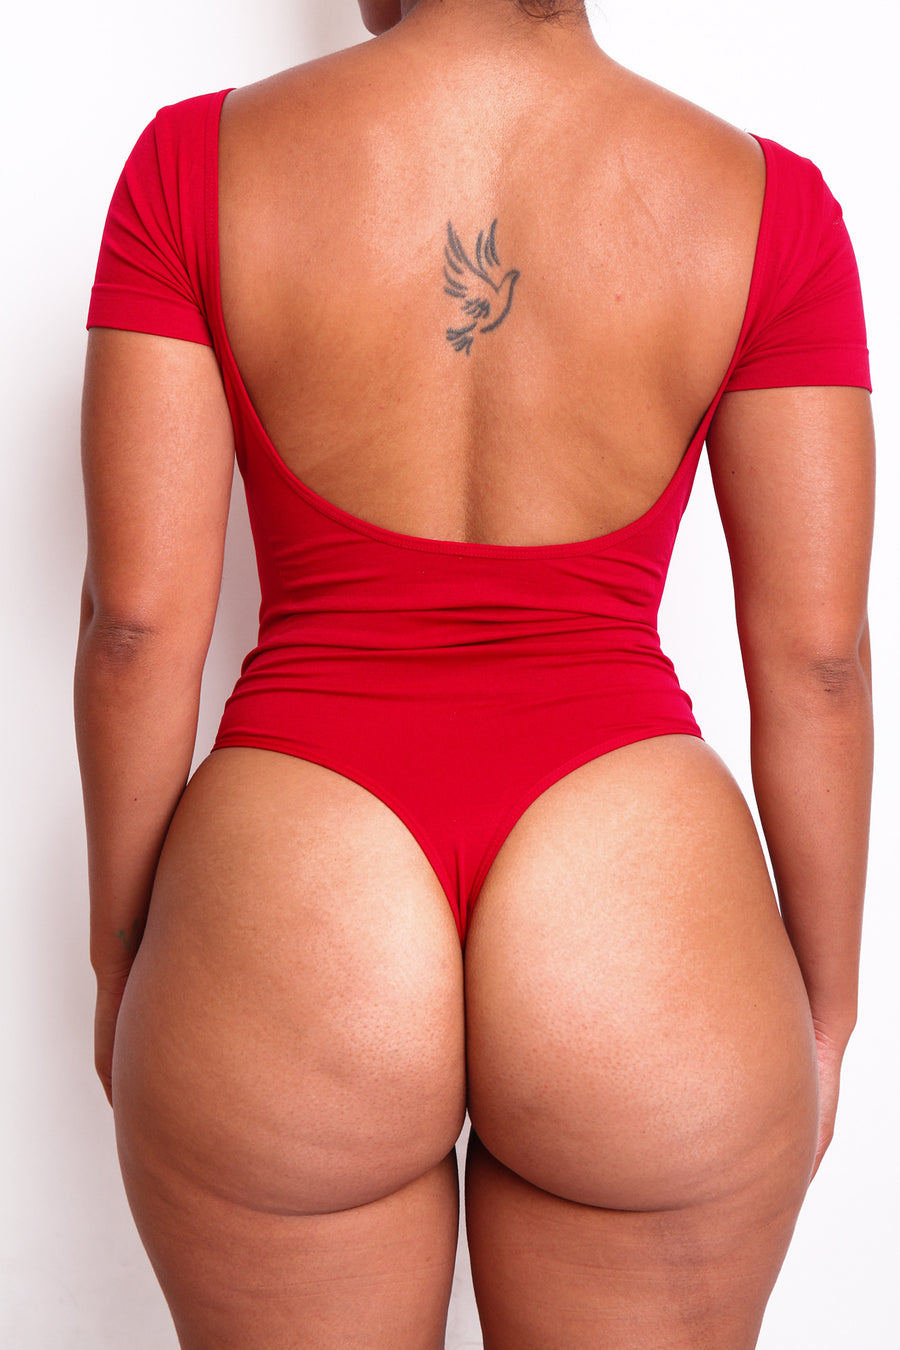 Red Short Sleeve Body By Babes Thong Bodysuit - Babes And Felines | Specializing in Fashionable Staple Pieces for Every Shape and Size